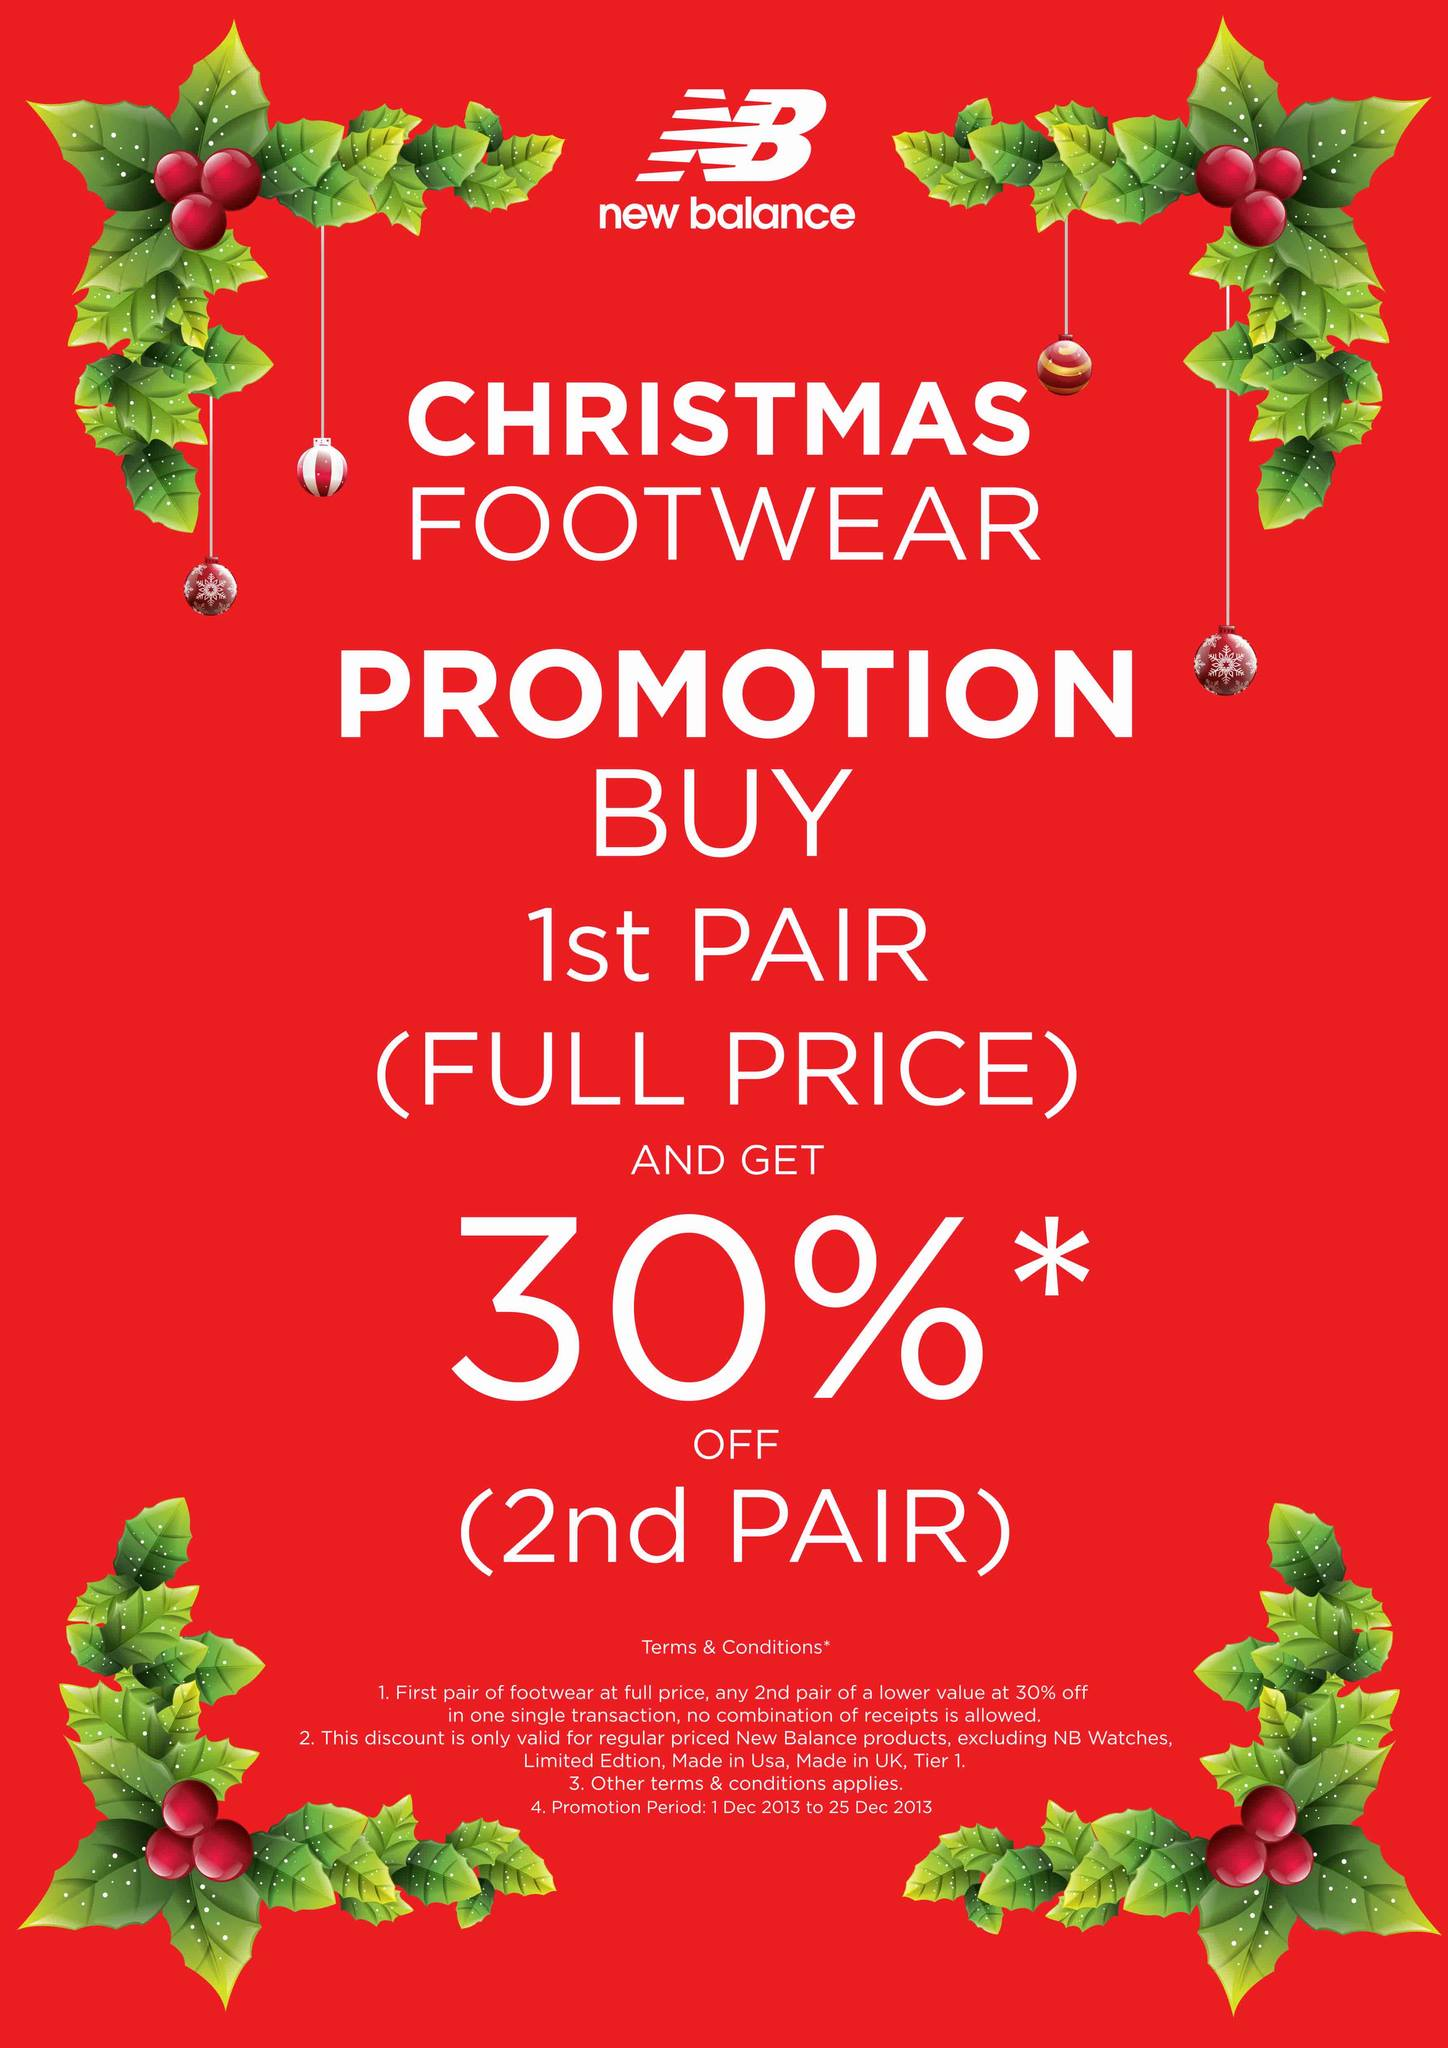 New Balance Christmas Footwear Promotion 2013: 30% Off Second Pair Purchase